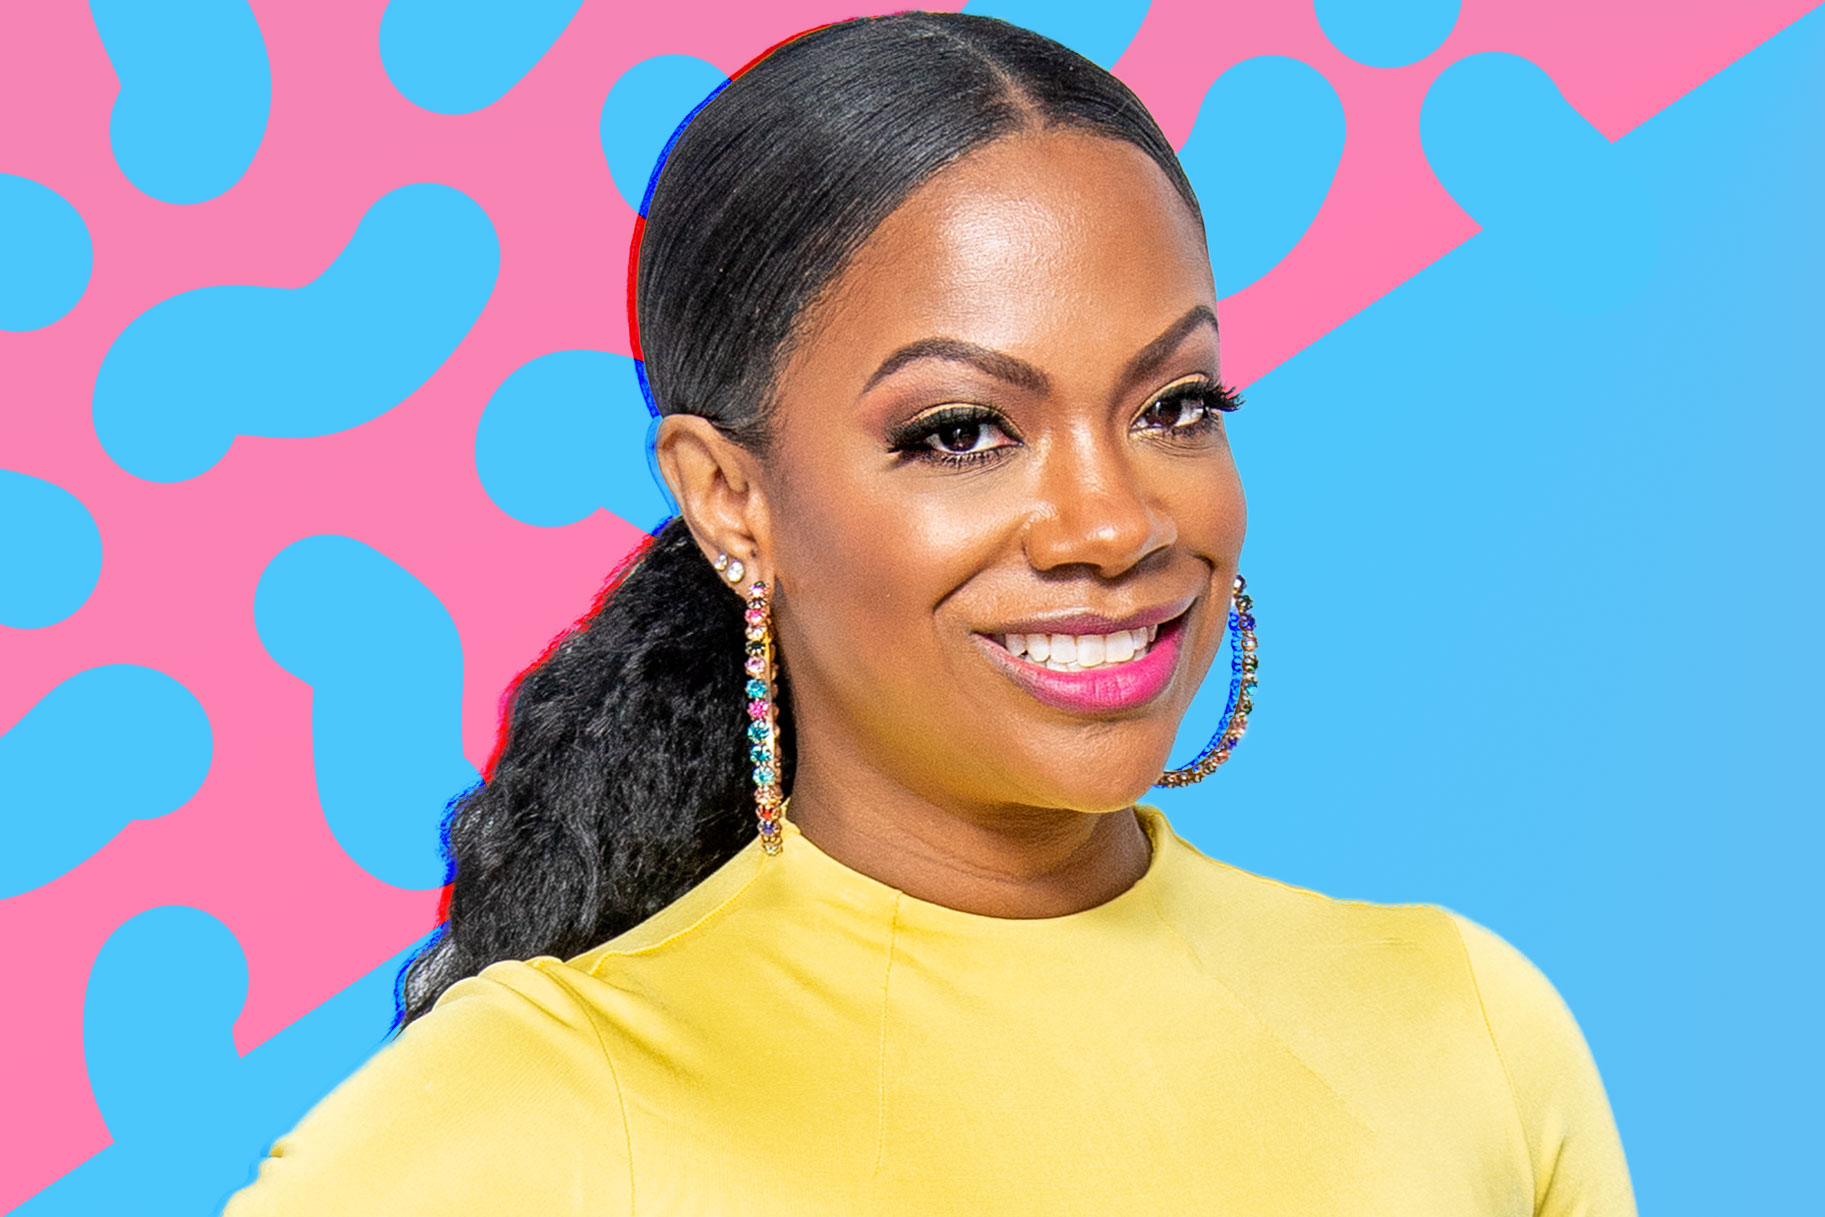 Kandi Burruss Attended The Wedding Of Raymond Santana And Deelishis